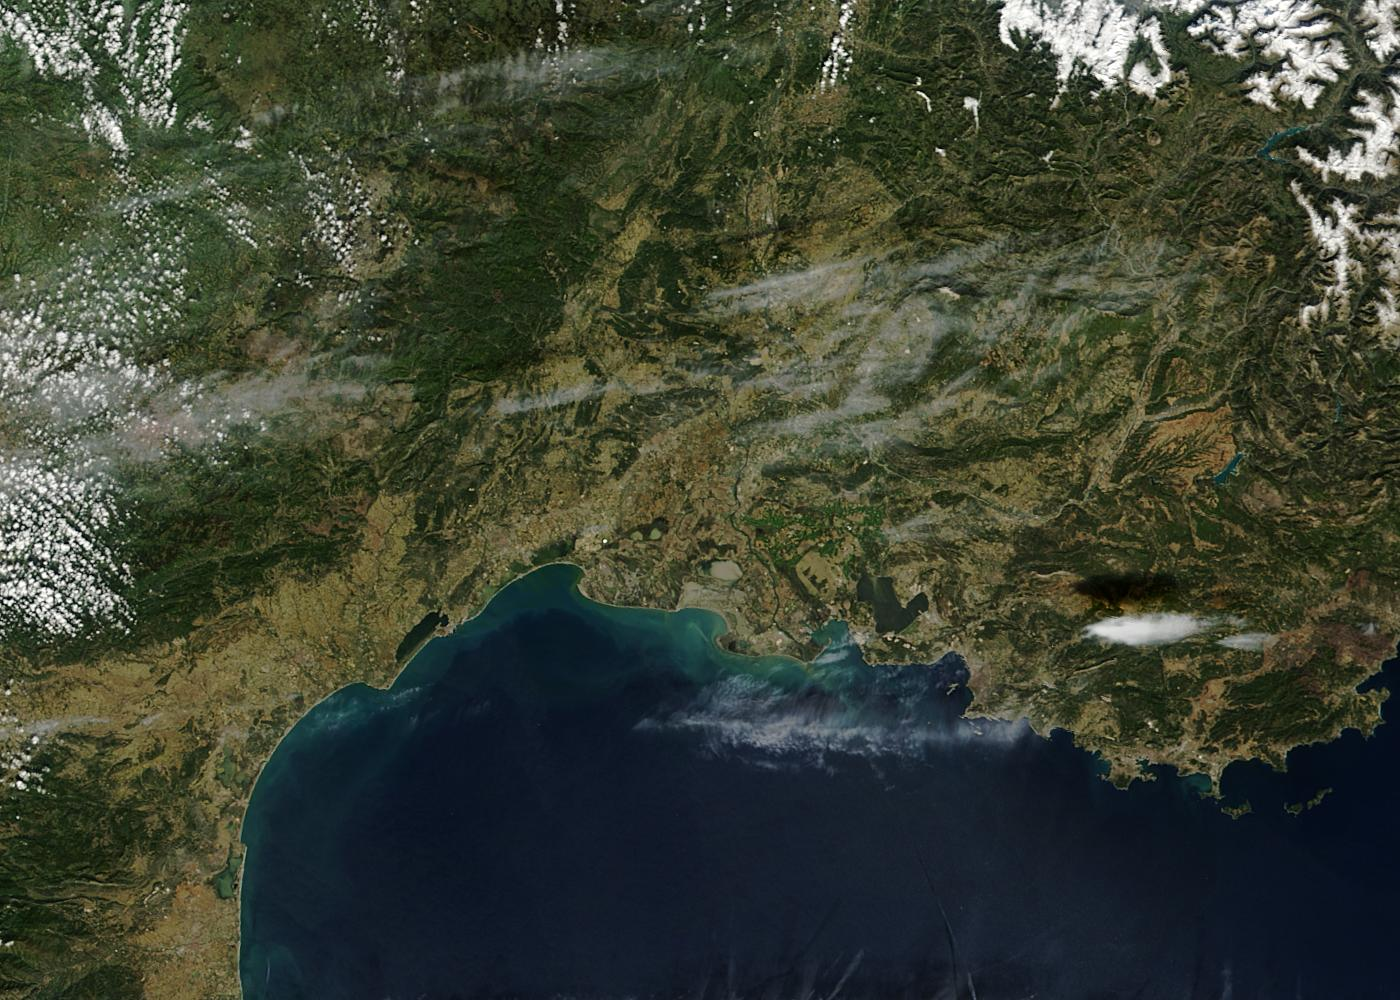 Southern France (before floods)